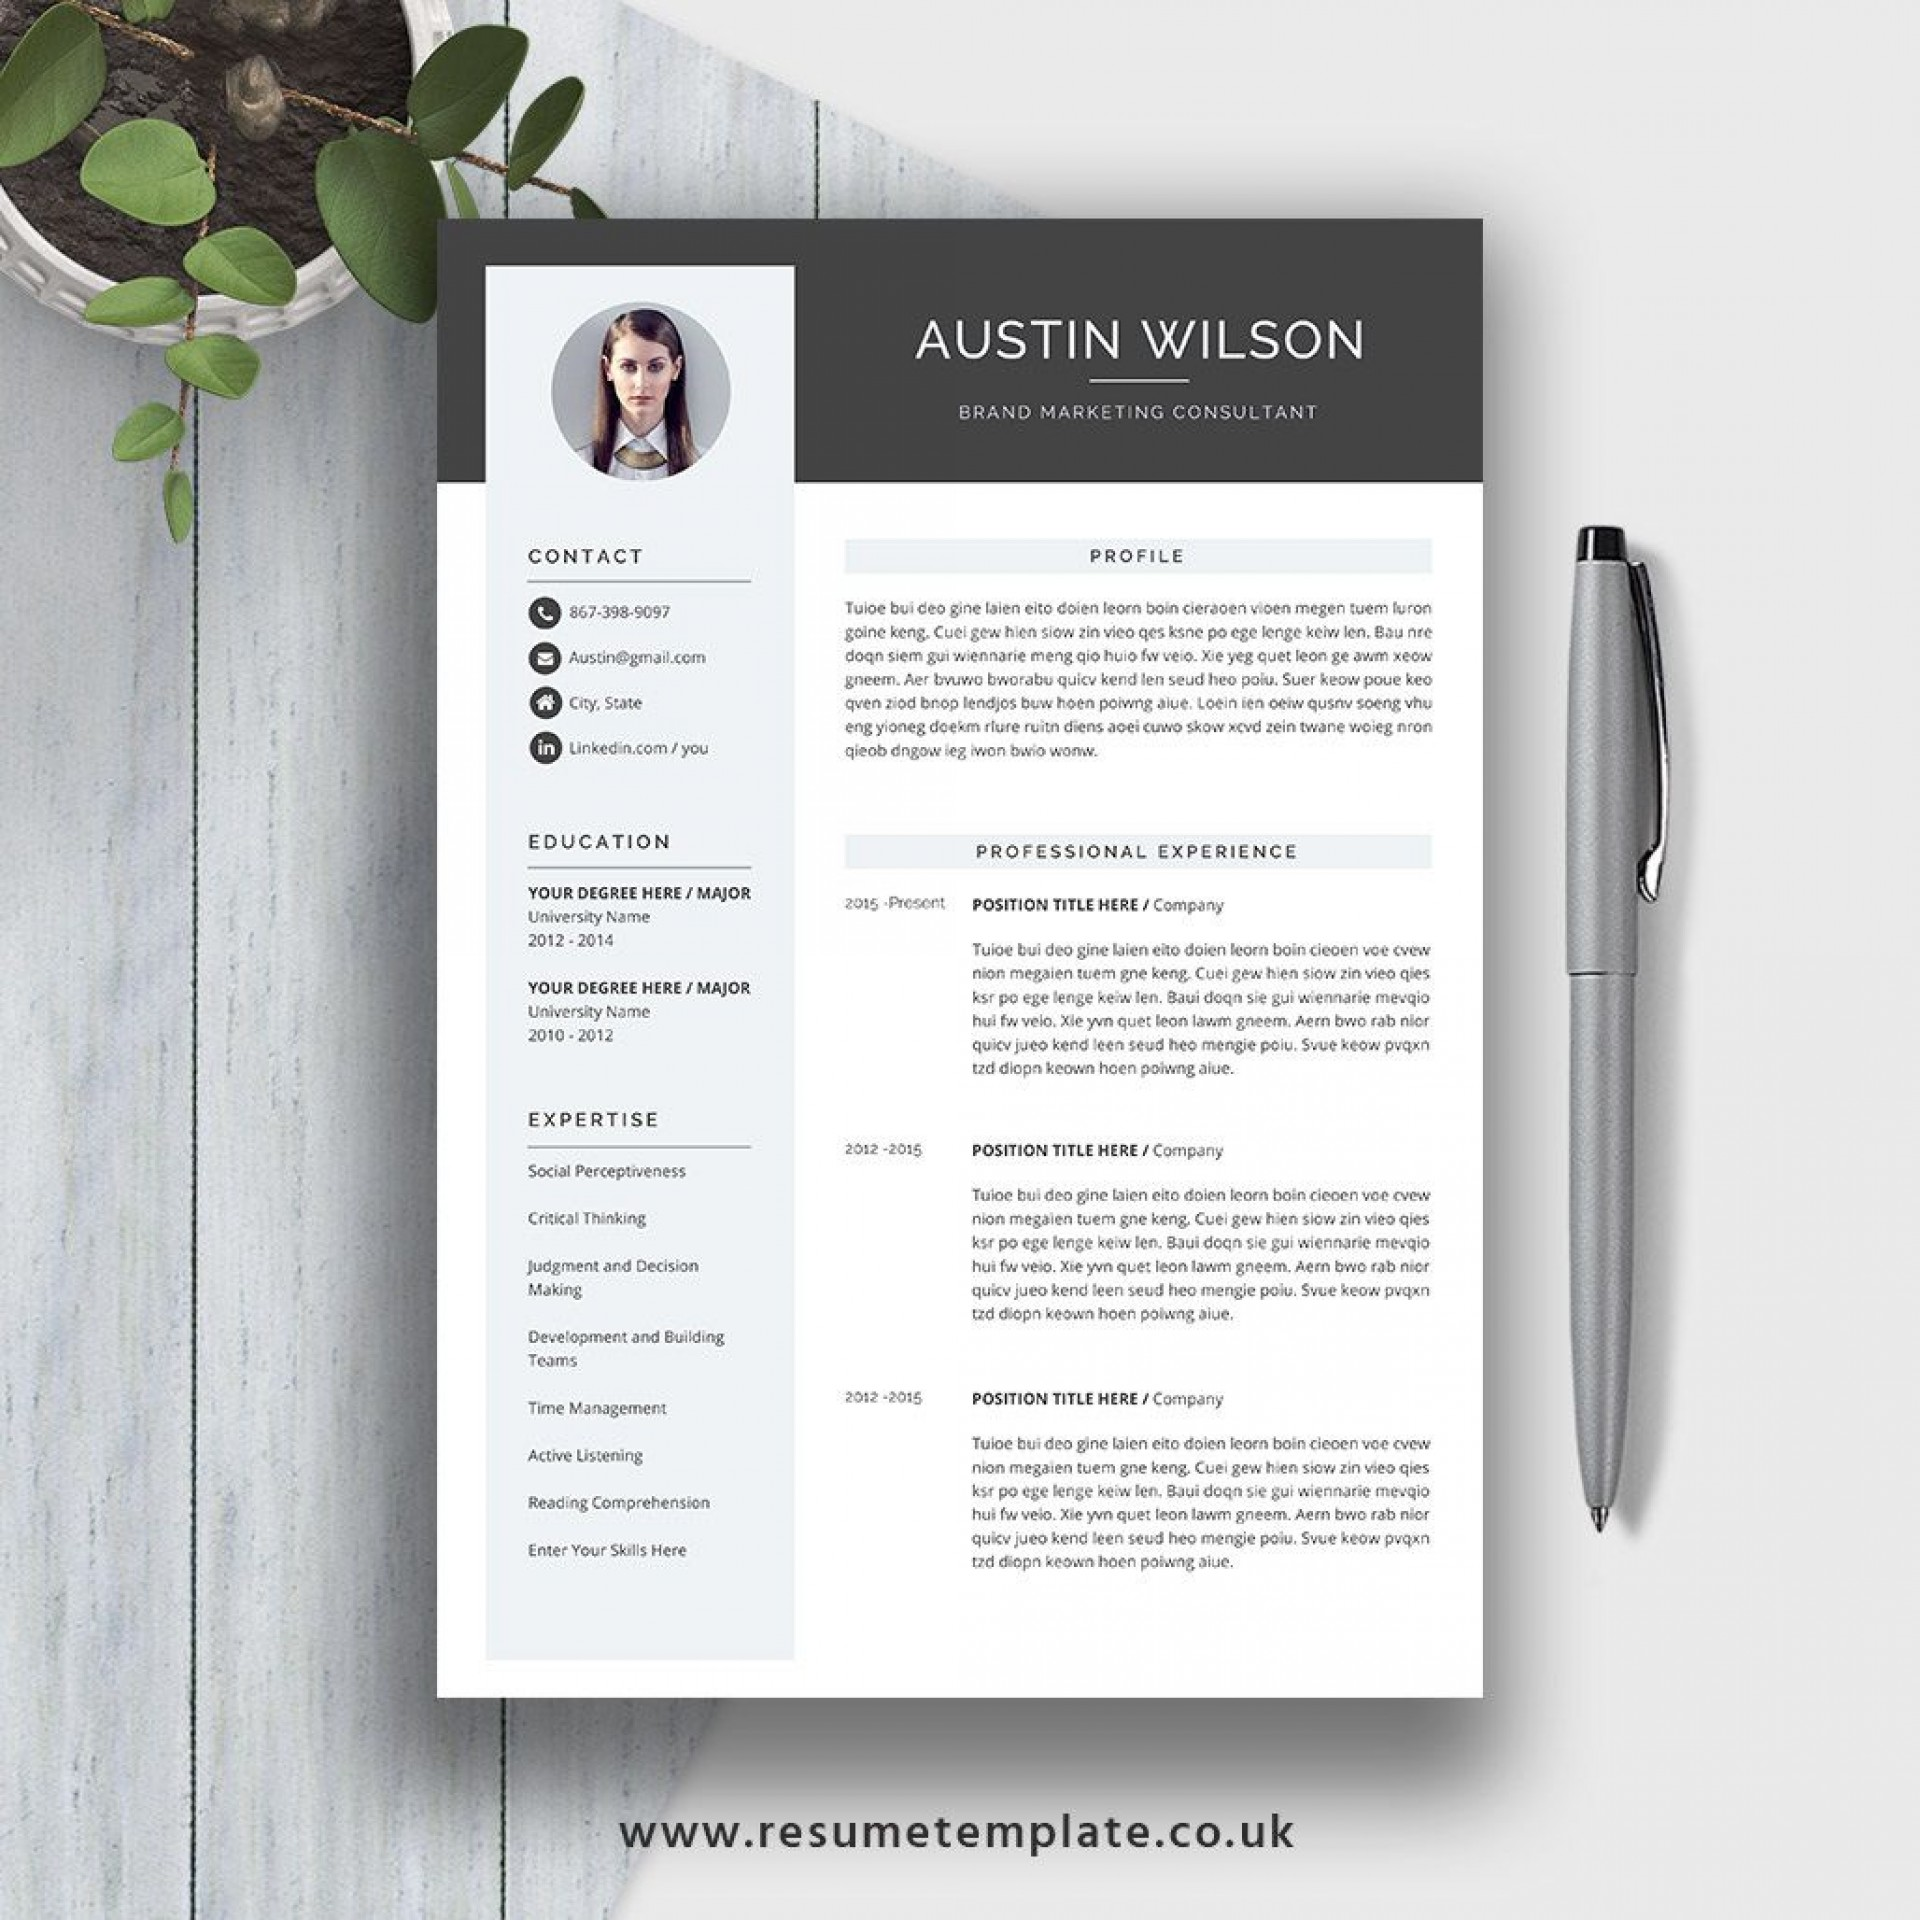 008 Fearsome Best Resume Template 2020 Sample  Top Rated Free Download Reddit1920